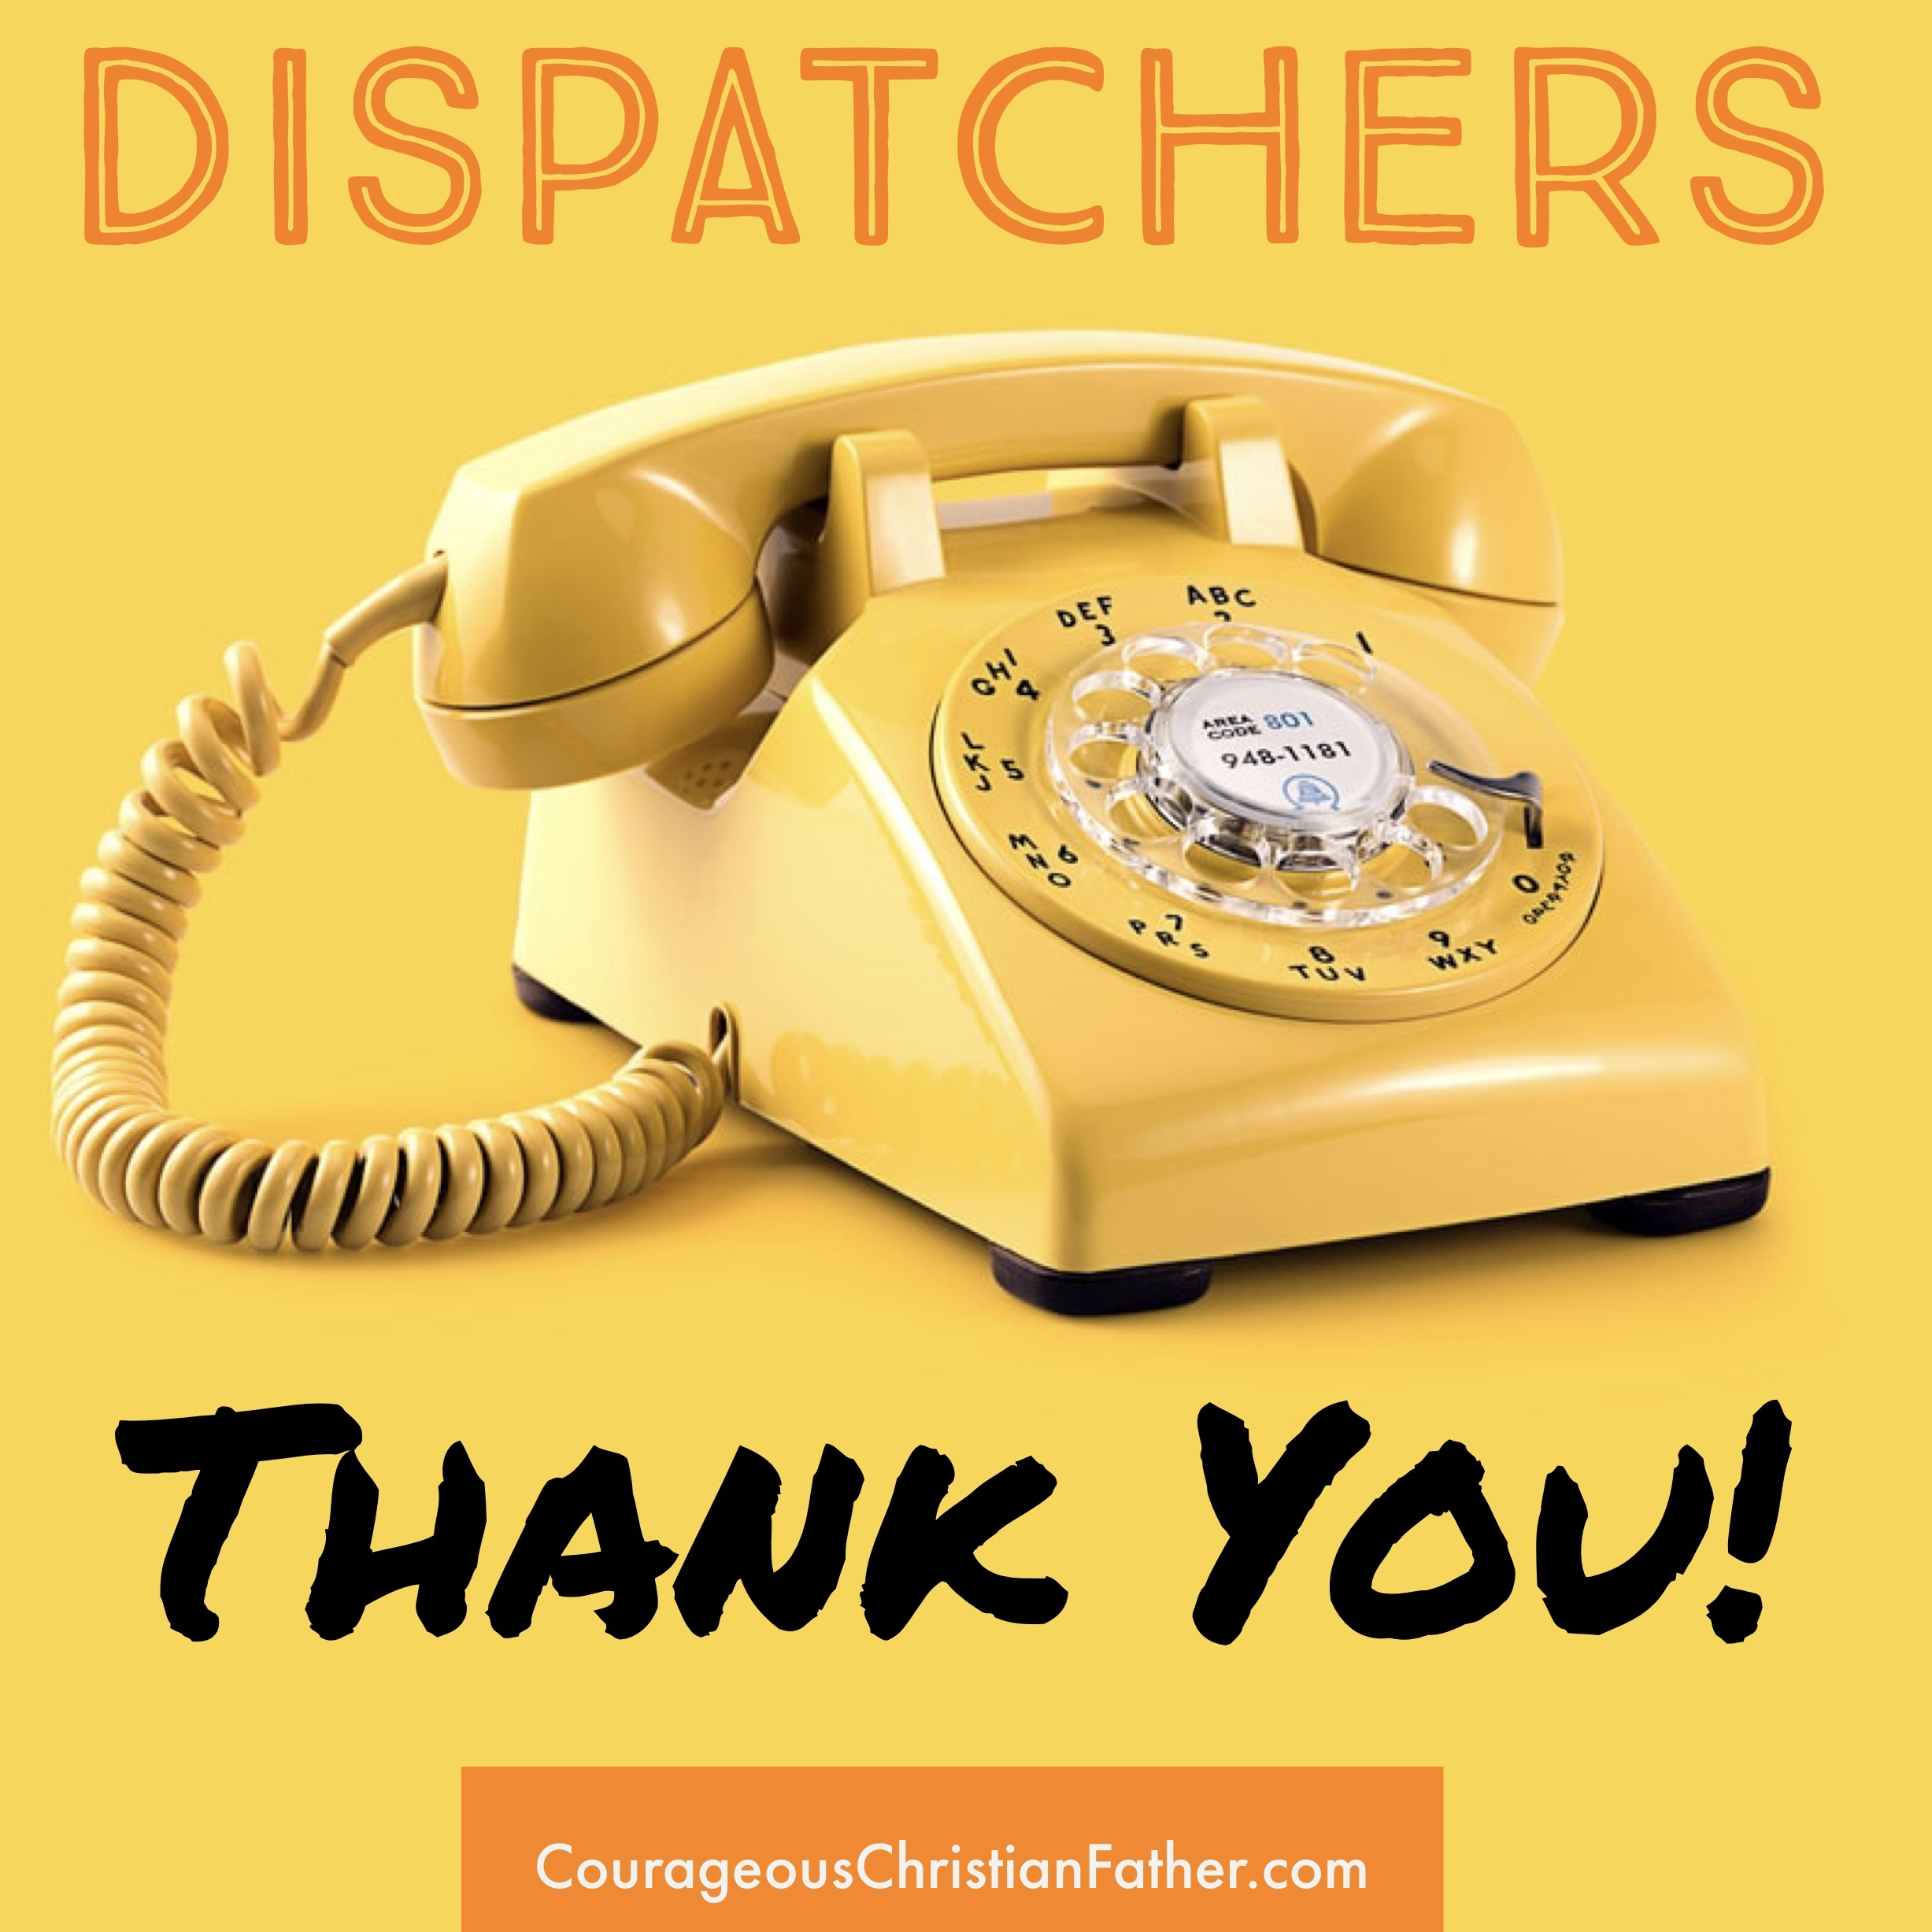 Thank You Shoutouts - Dispatchers